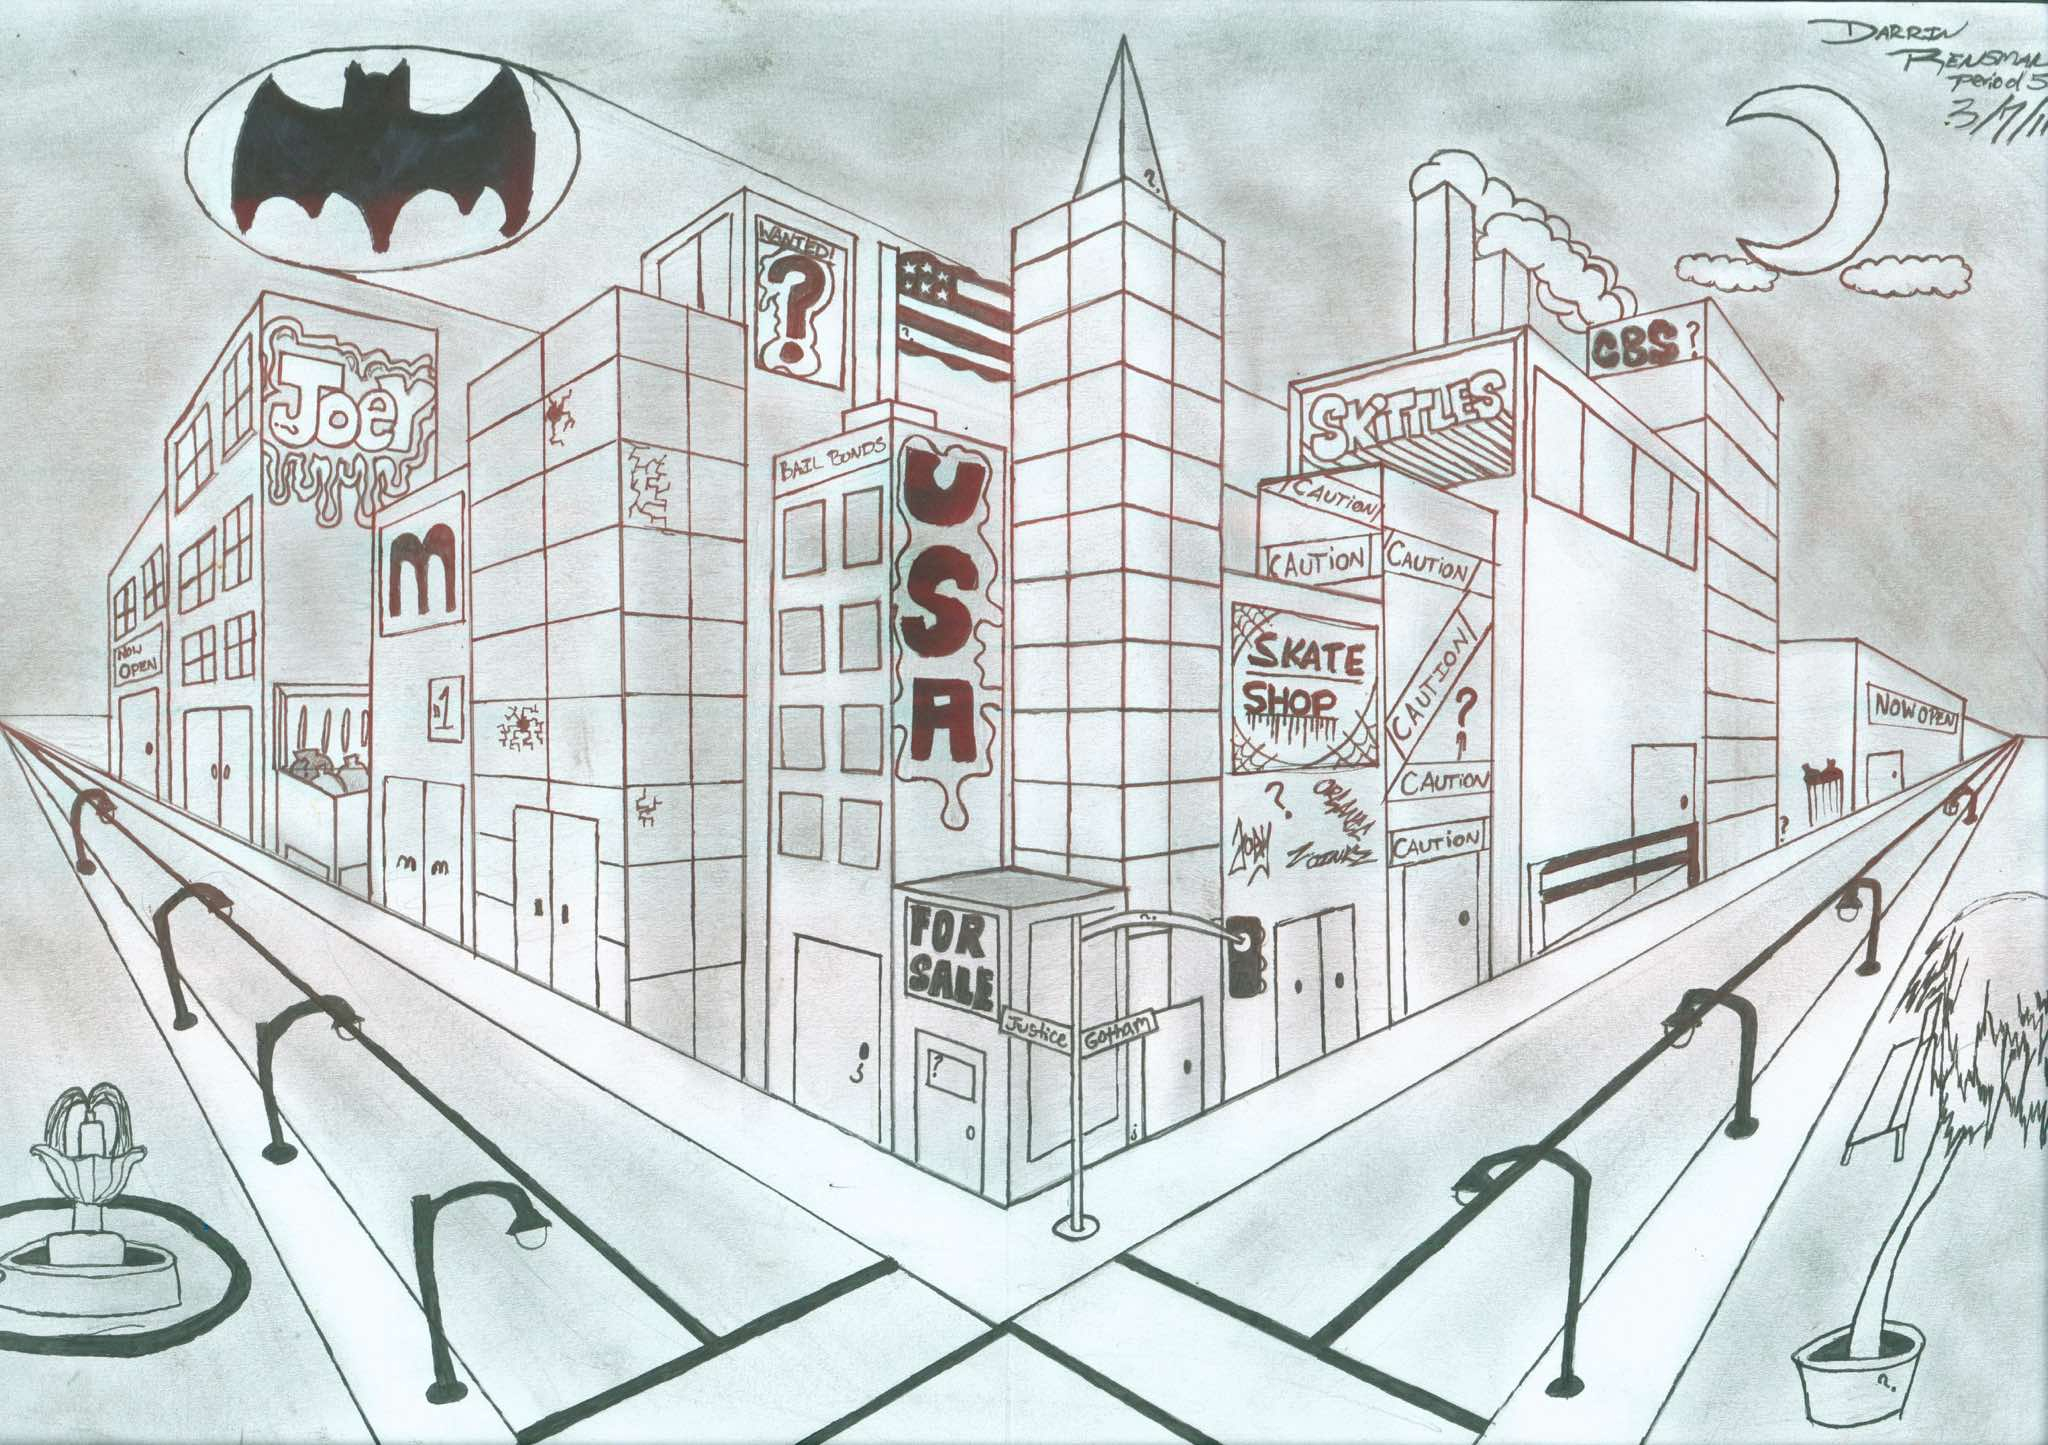 2048x1445 City Perspective Drawing Jghs 2010 2011 Two Point Perspective